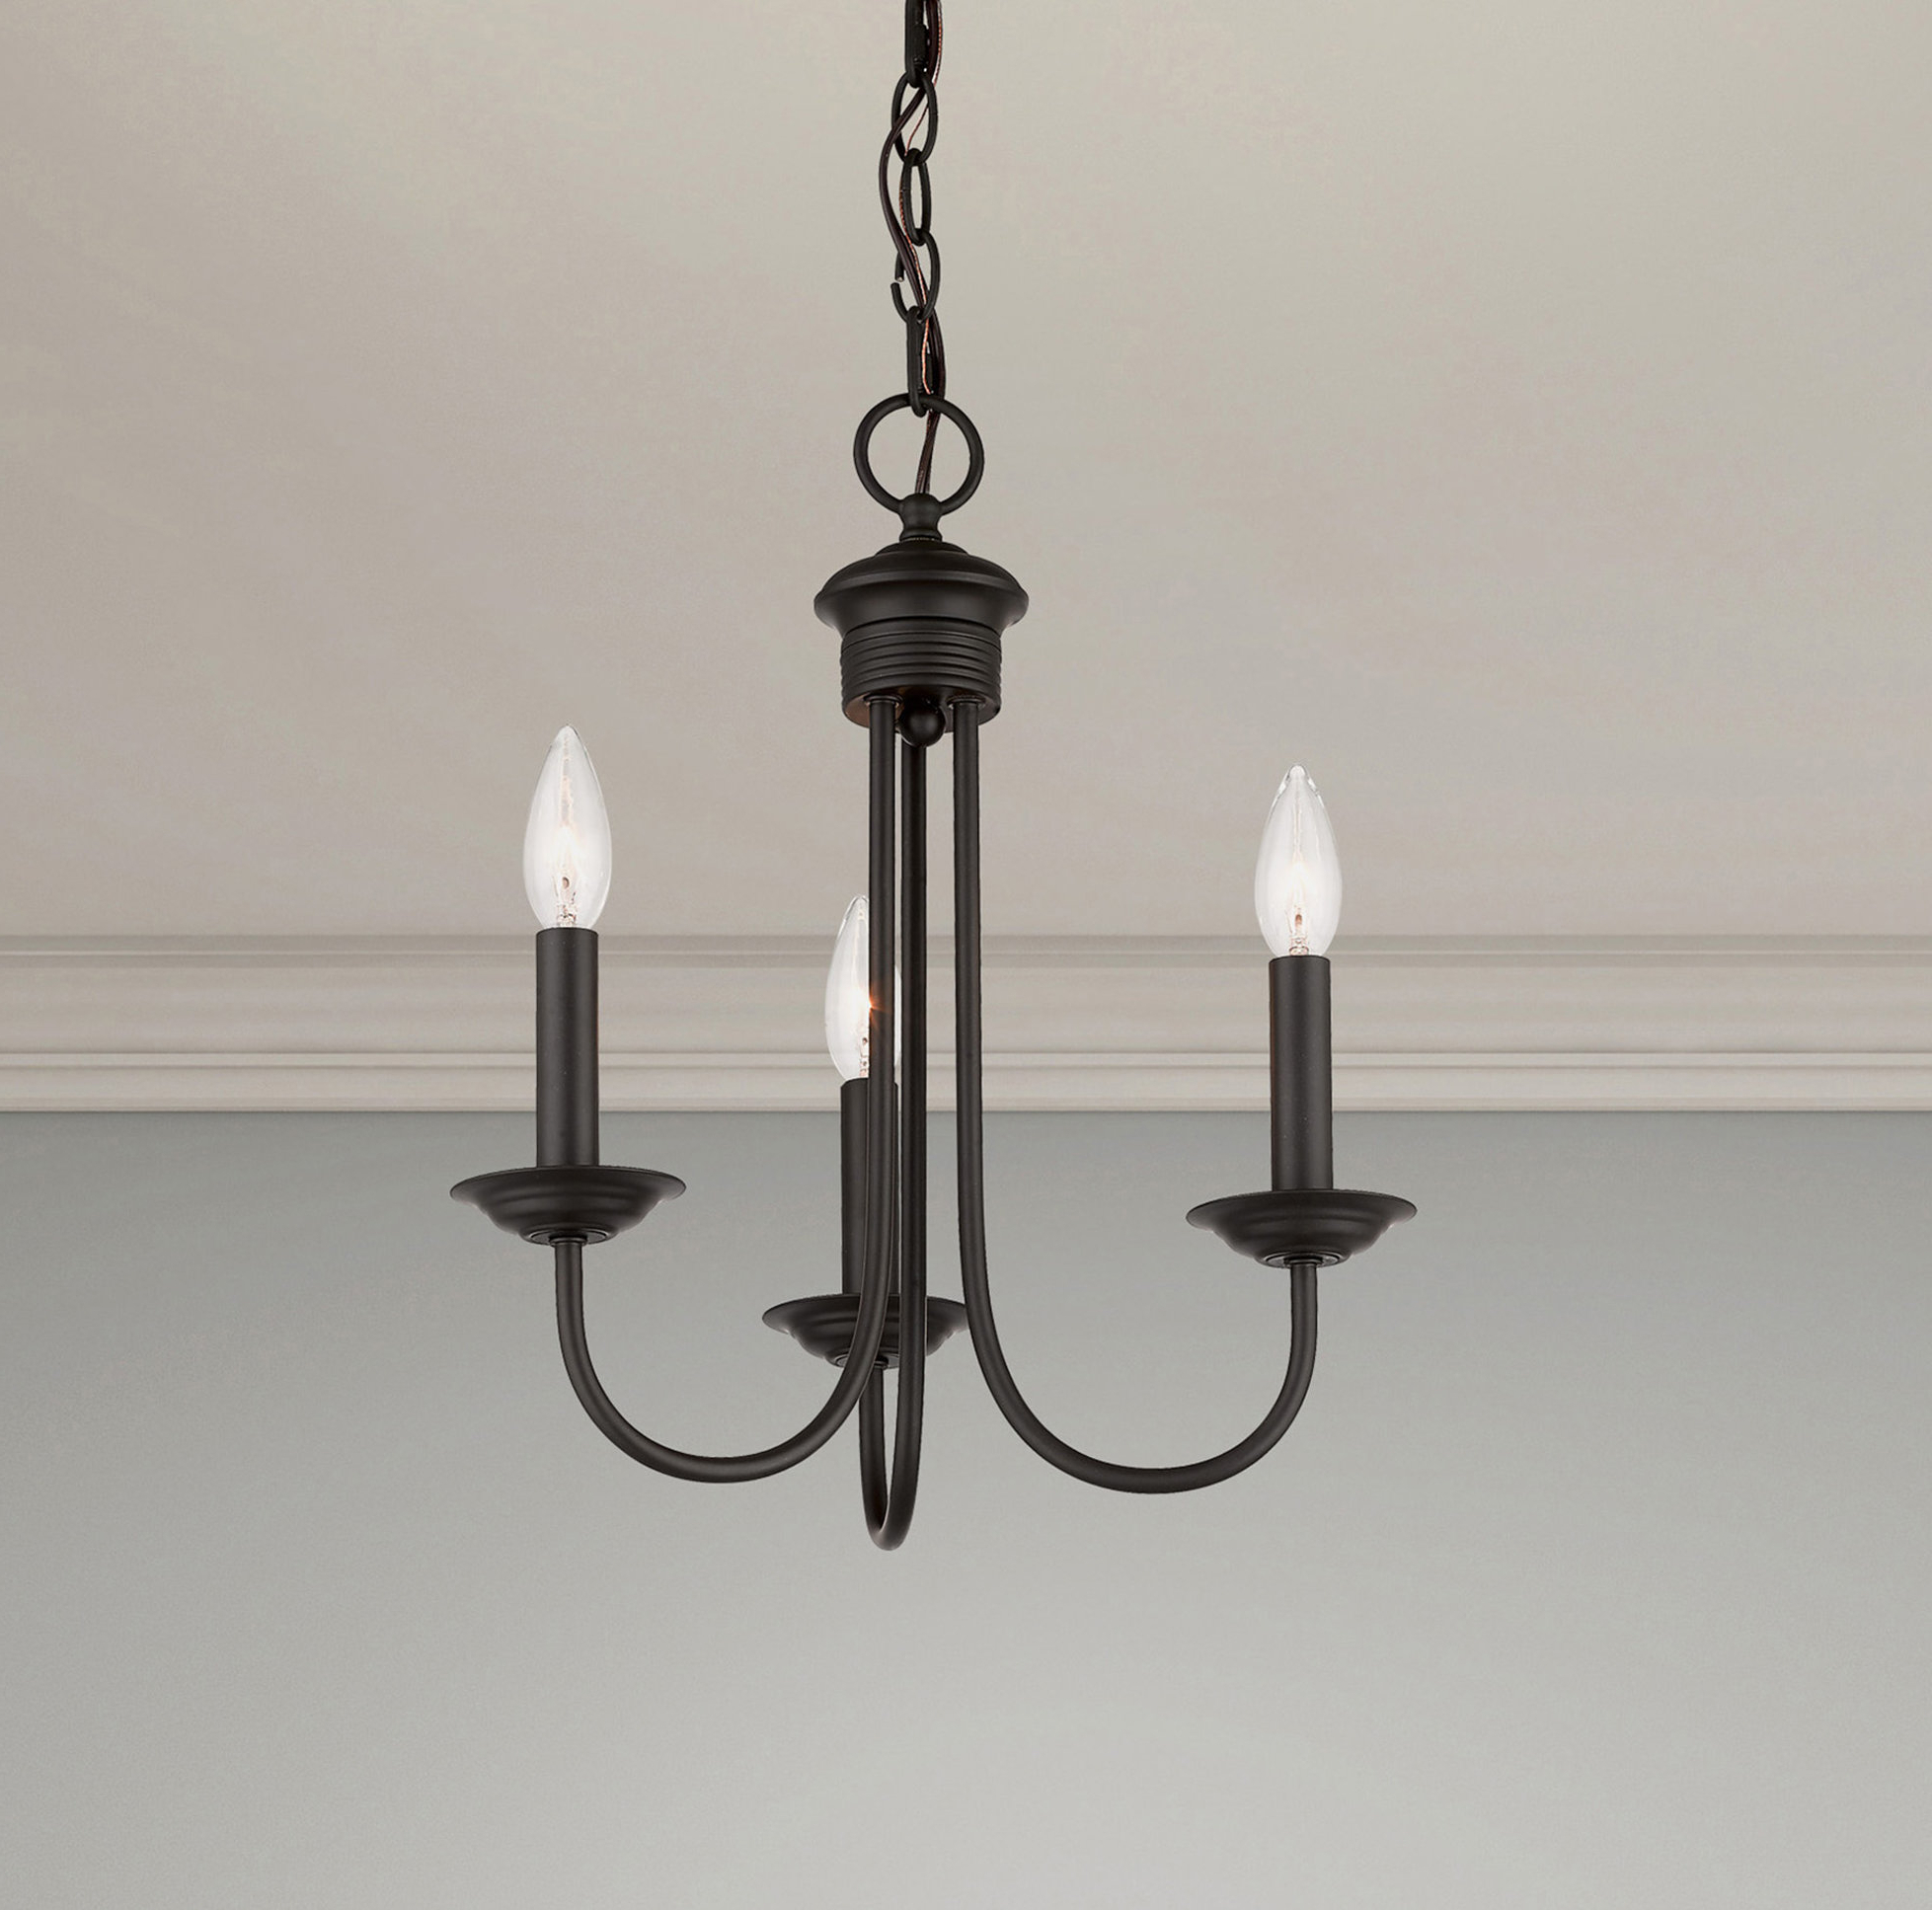 Widely Used Perseus 6 Light Candle Style Chandeliers Regarding Carruthers 3 Light Candle Style Chandelier (View 20 of 20)